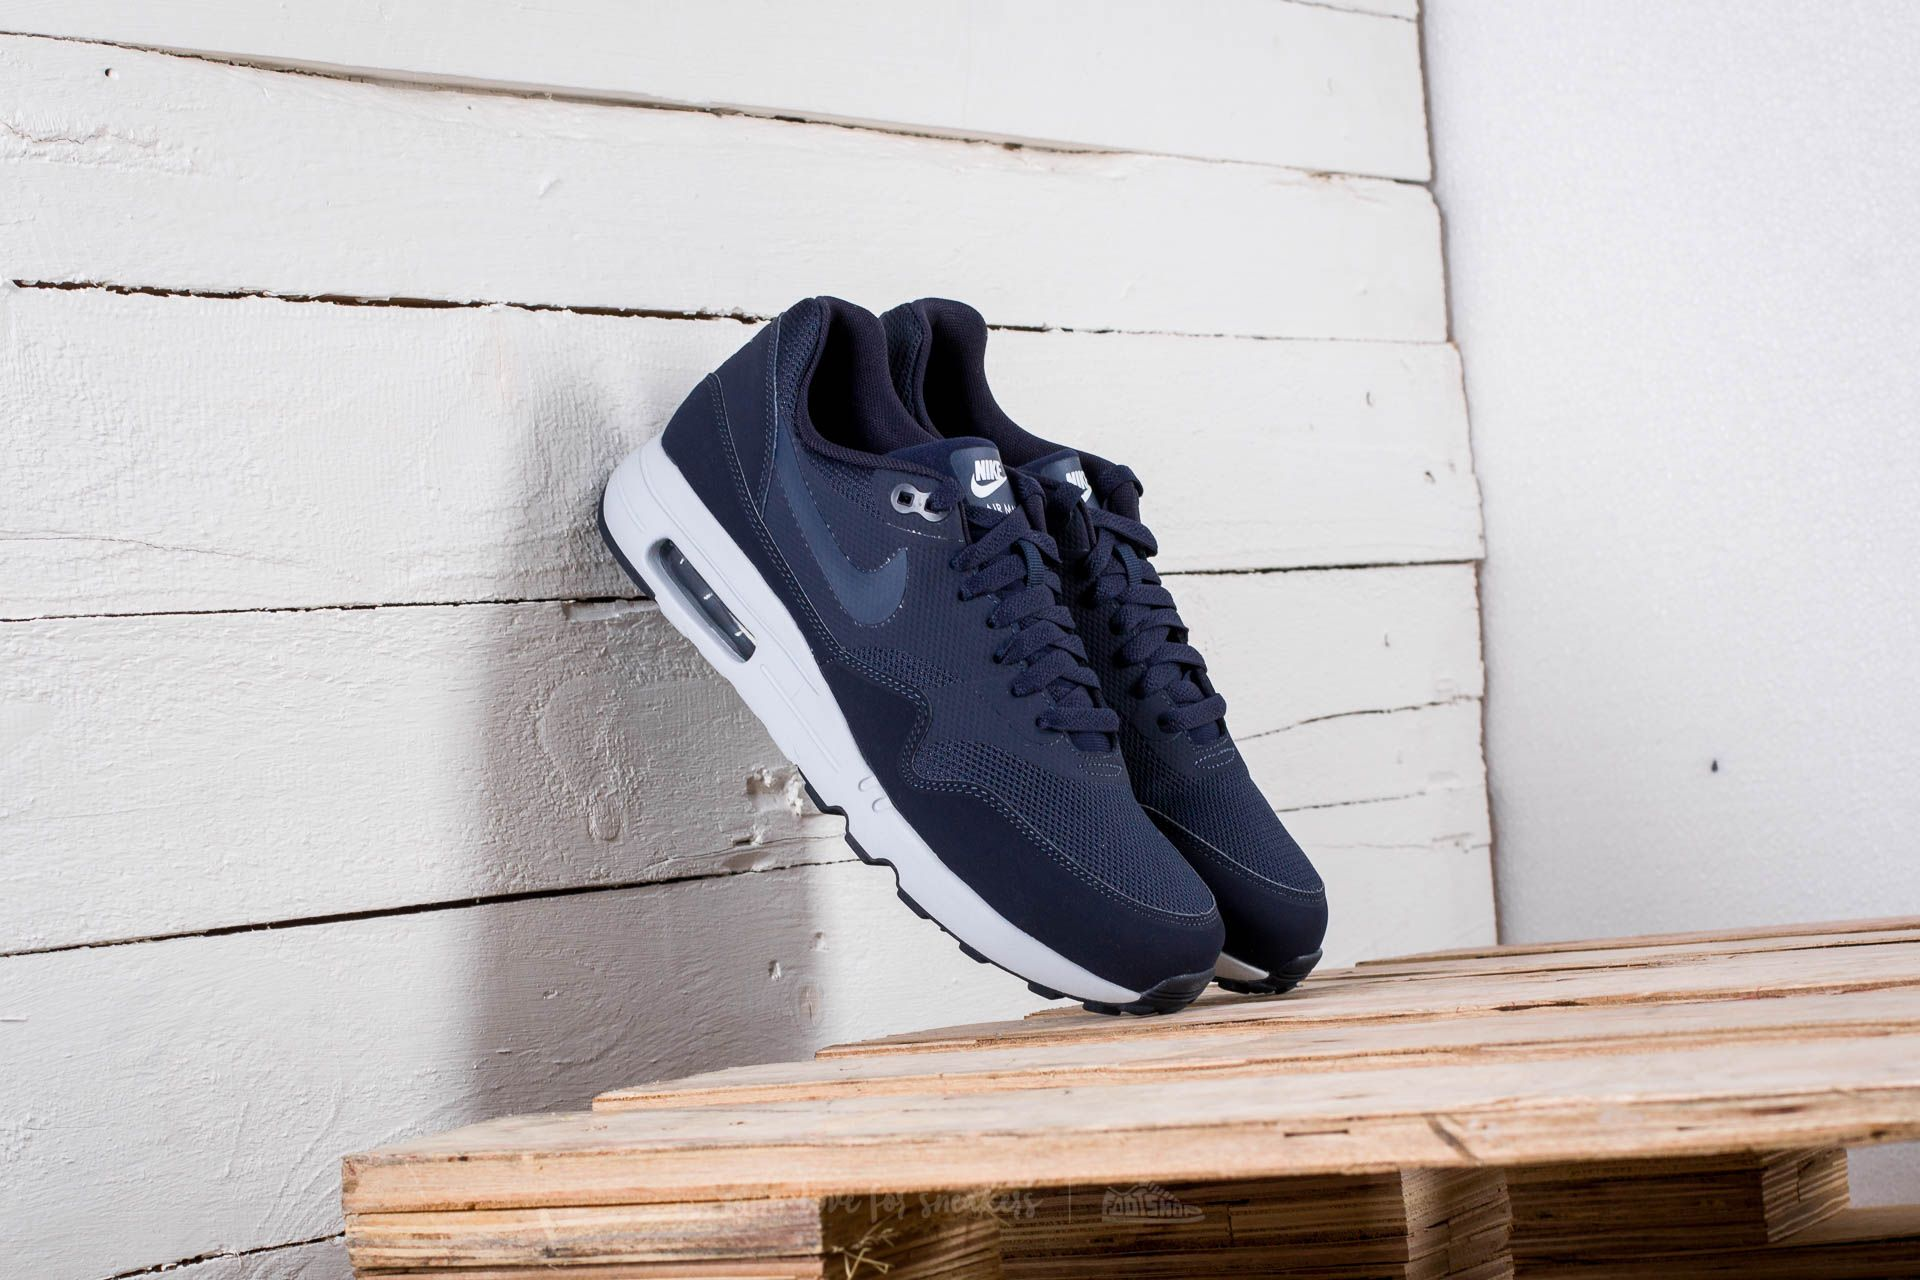 promo code 55004 26cb2 coupon code for difference between air max 1 and air max 1 essential ...